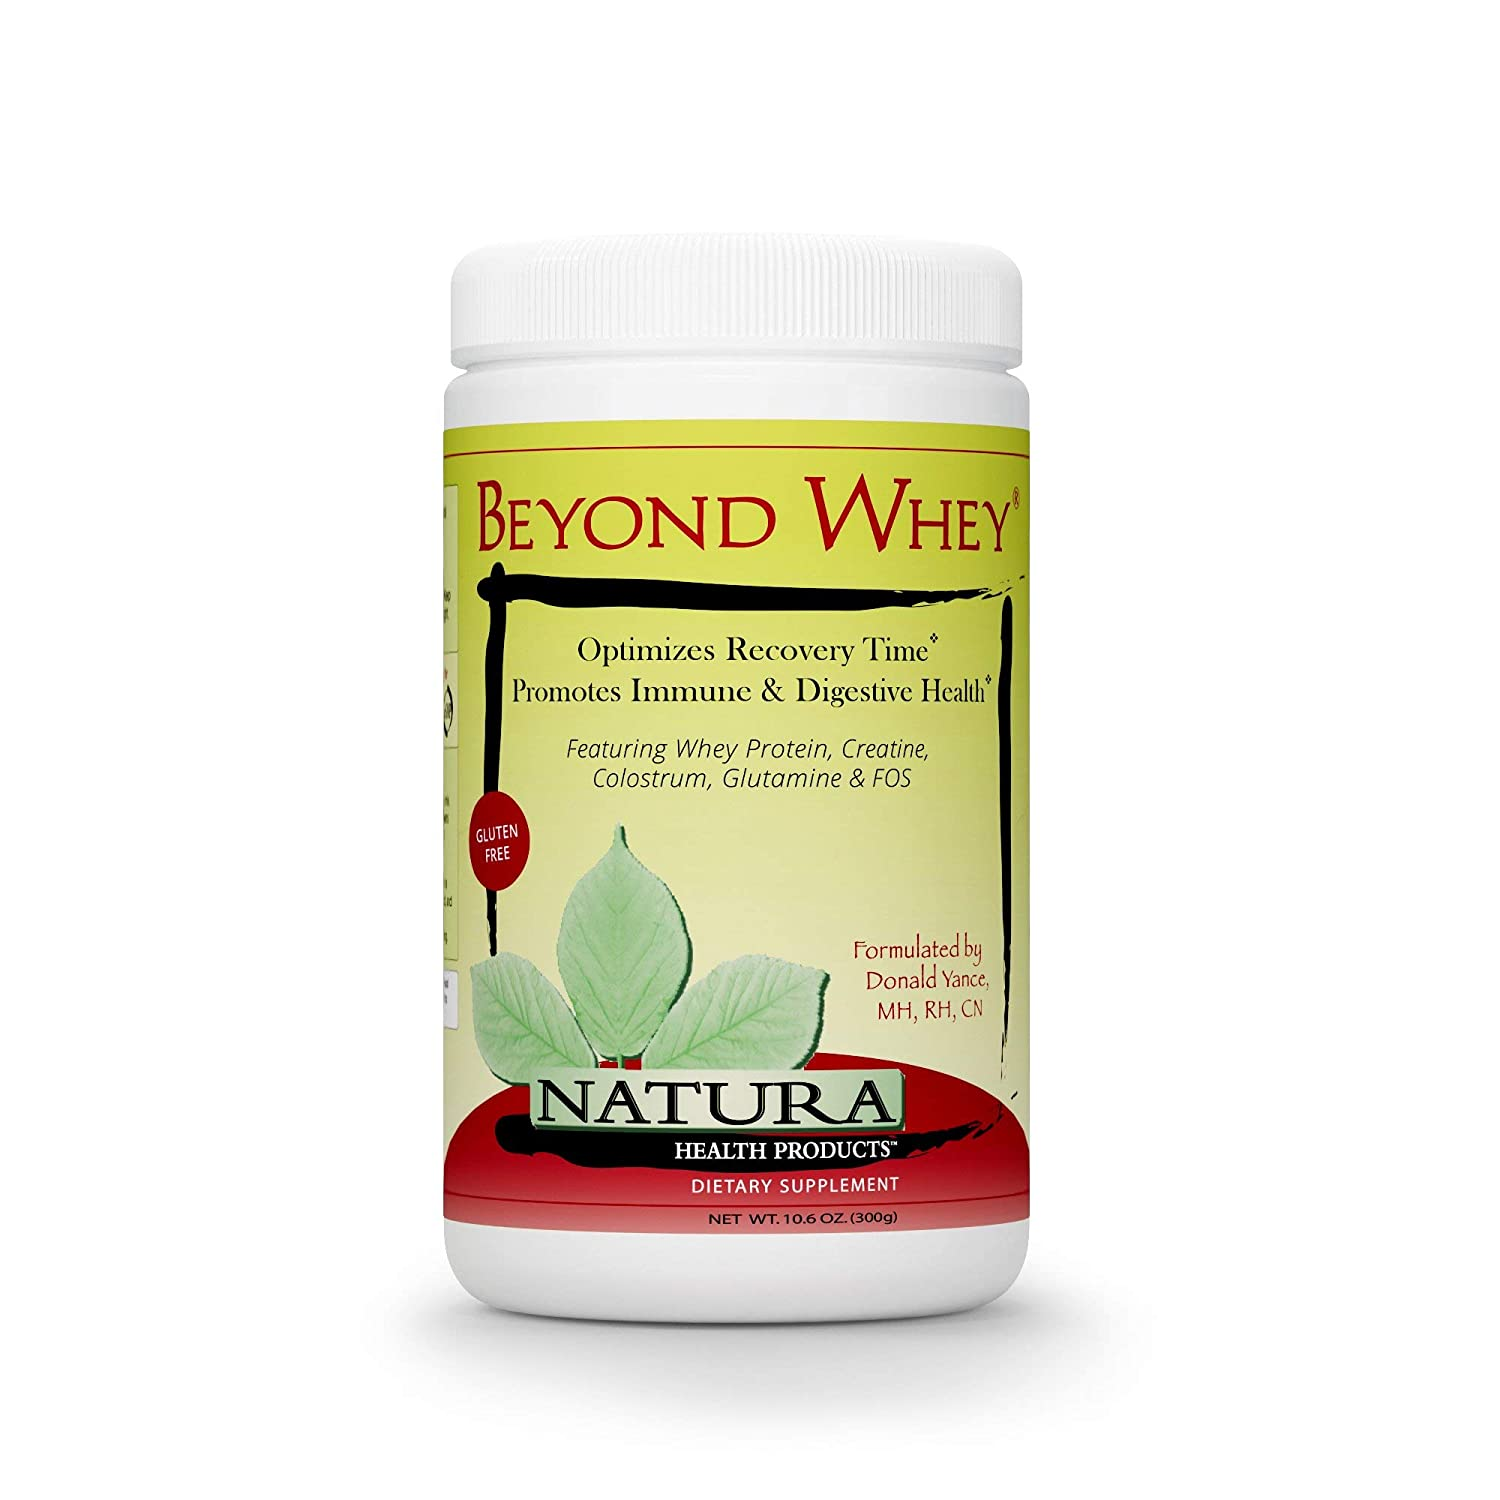 Natura Health Products – Beyond Whey Grass Fed Whey Protein Concentrate – GMO, Hormone, Gluten Free – Natural Maximum Recovery with Creatine, Magnesium, and Glutamine – 300 Grams 10.6 Ounces Powder